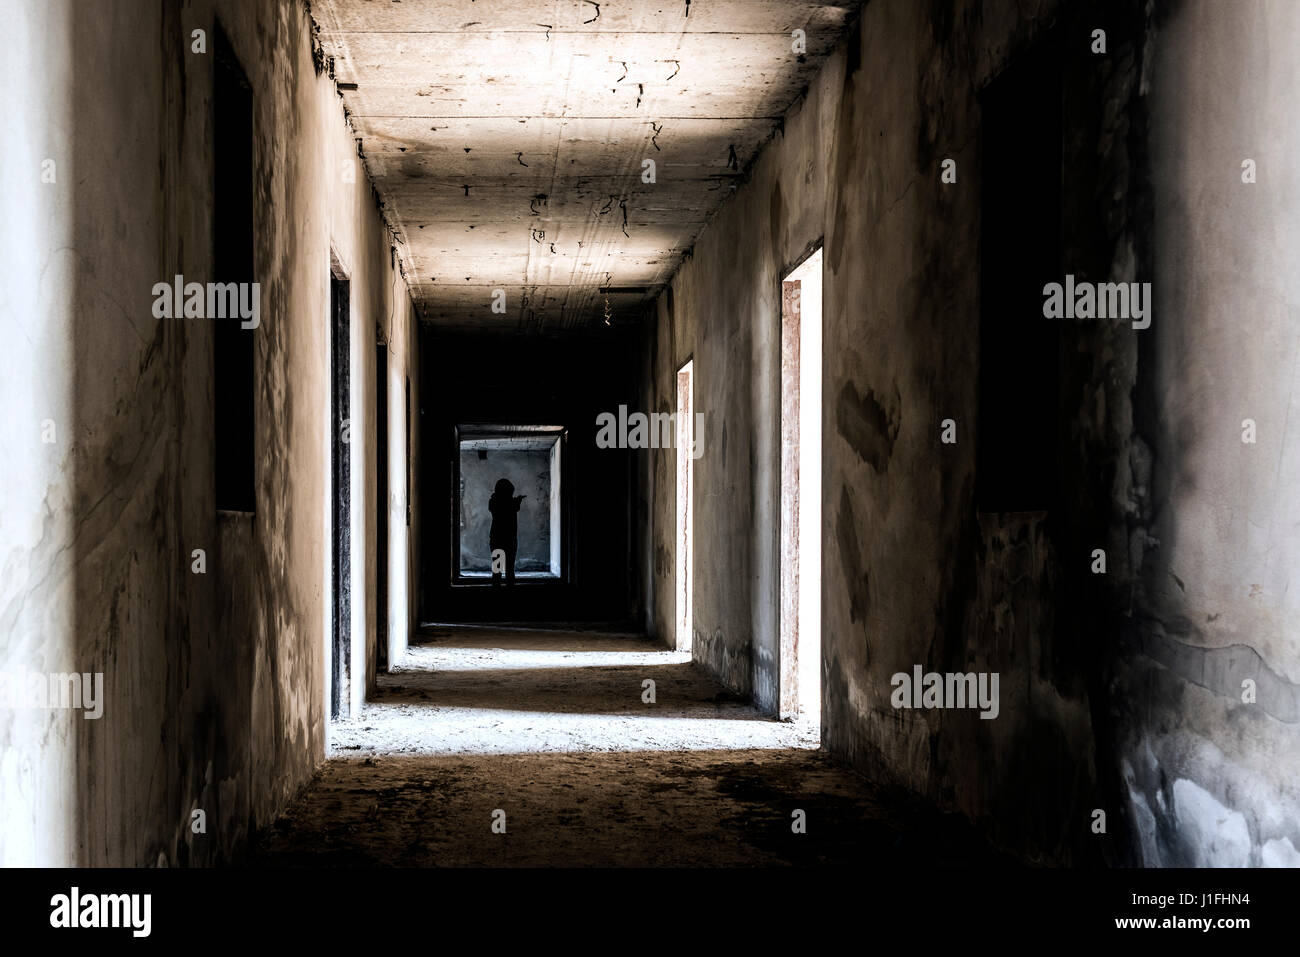 Abandoned building ghost living place with scary woman inside, darkness horror and halloween background concept - Stock Image